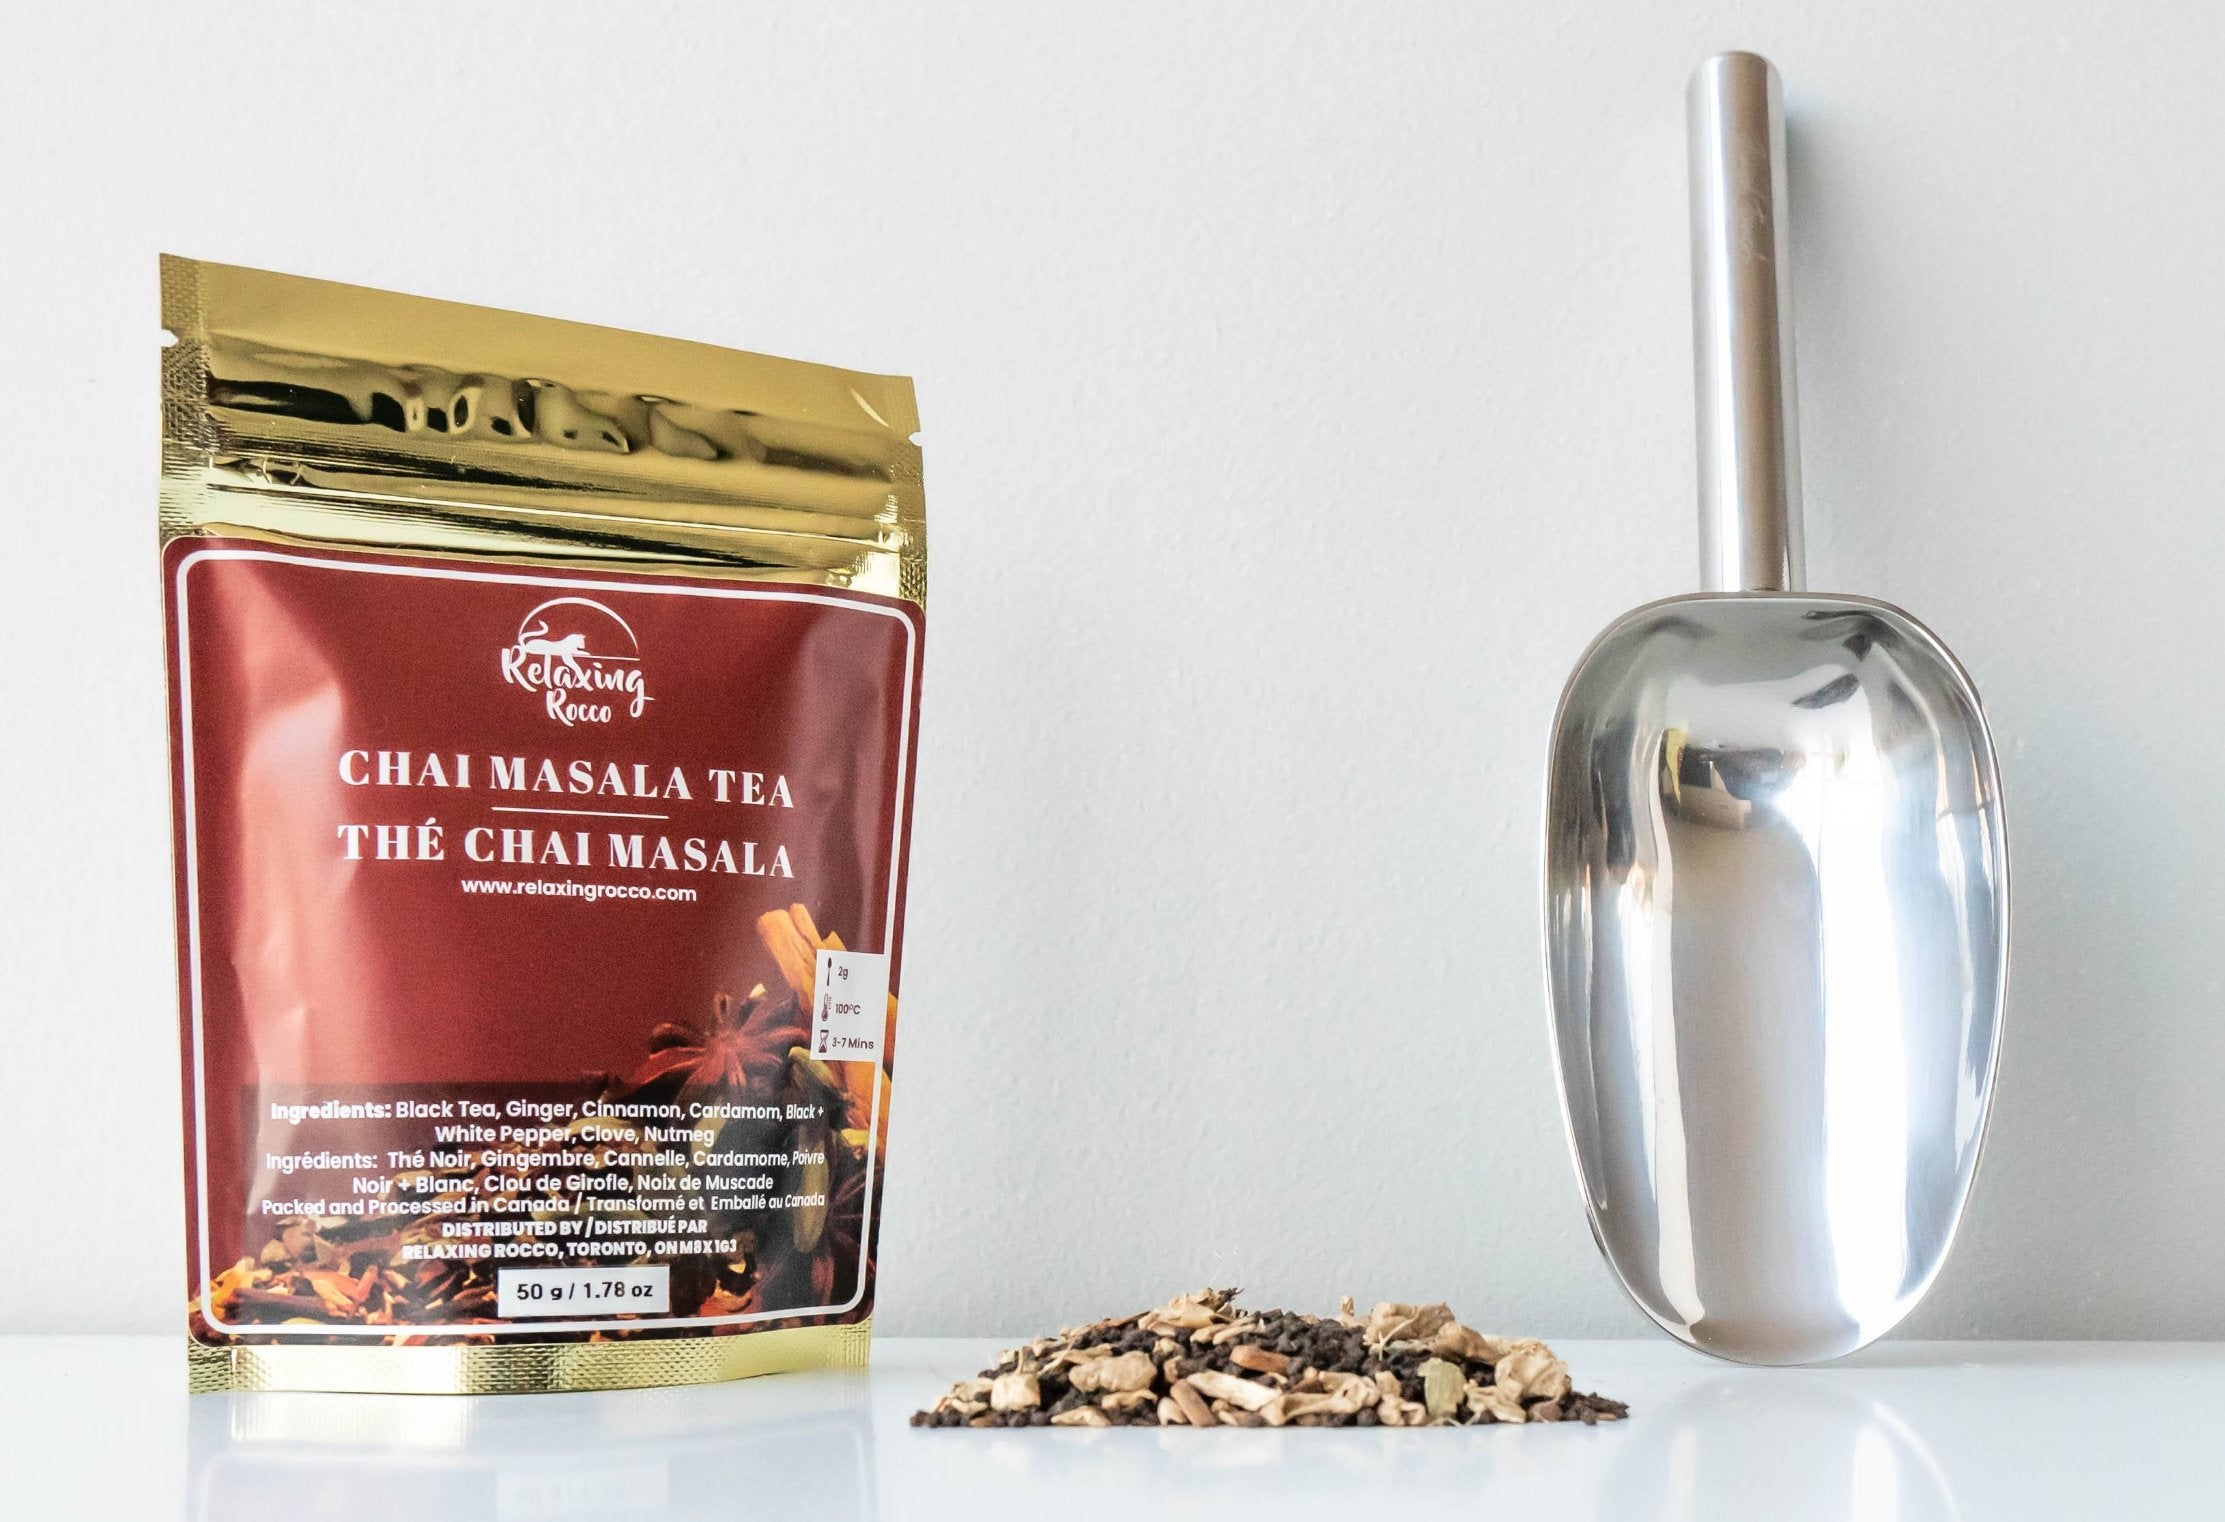 Chai Masala Relaxing Rocco Tea with sample and stainless steel scoop